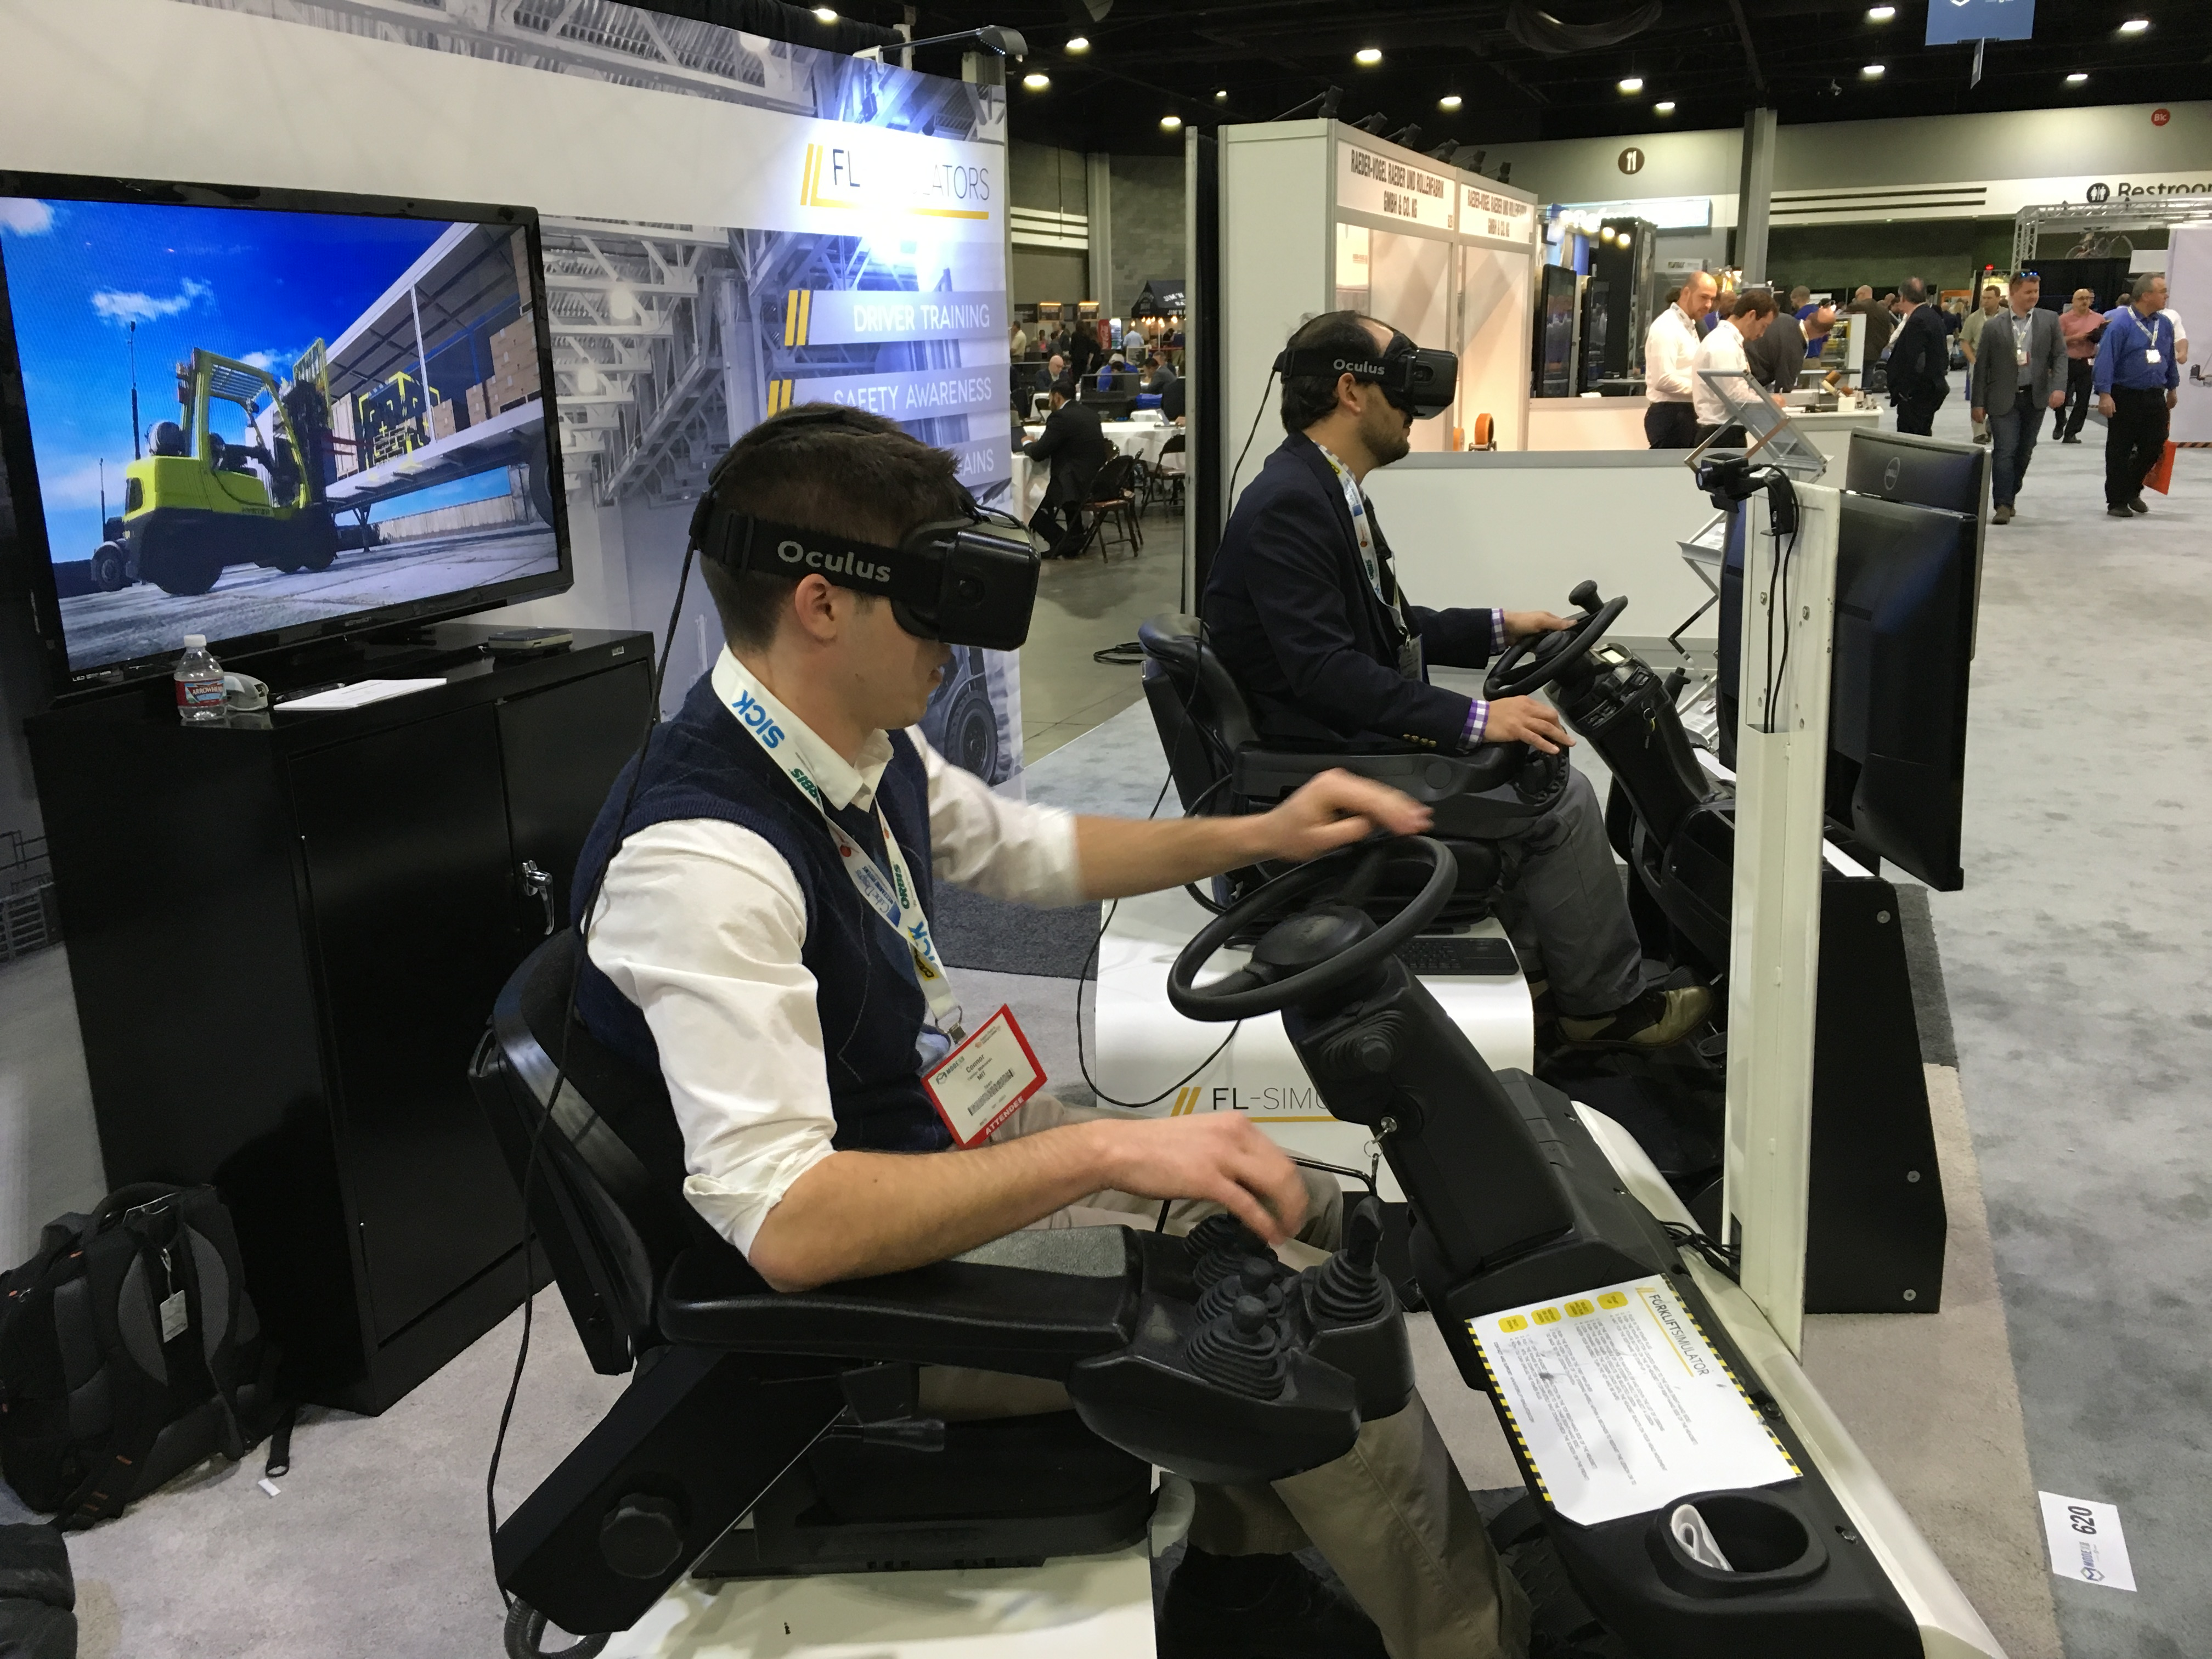 Forklift Simulator Designed to Train New Employees on How to Operate a Forklift in Virtual Reality.